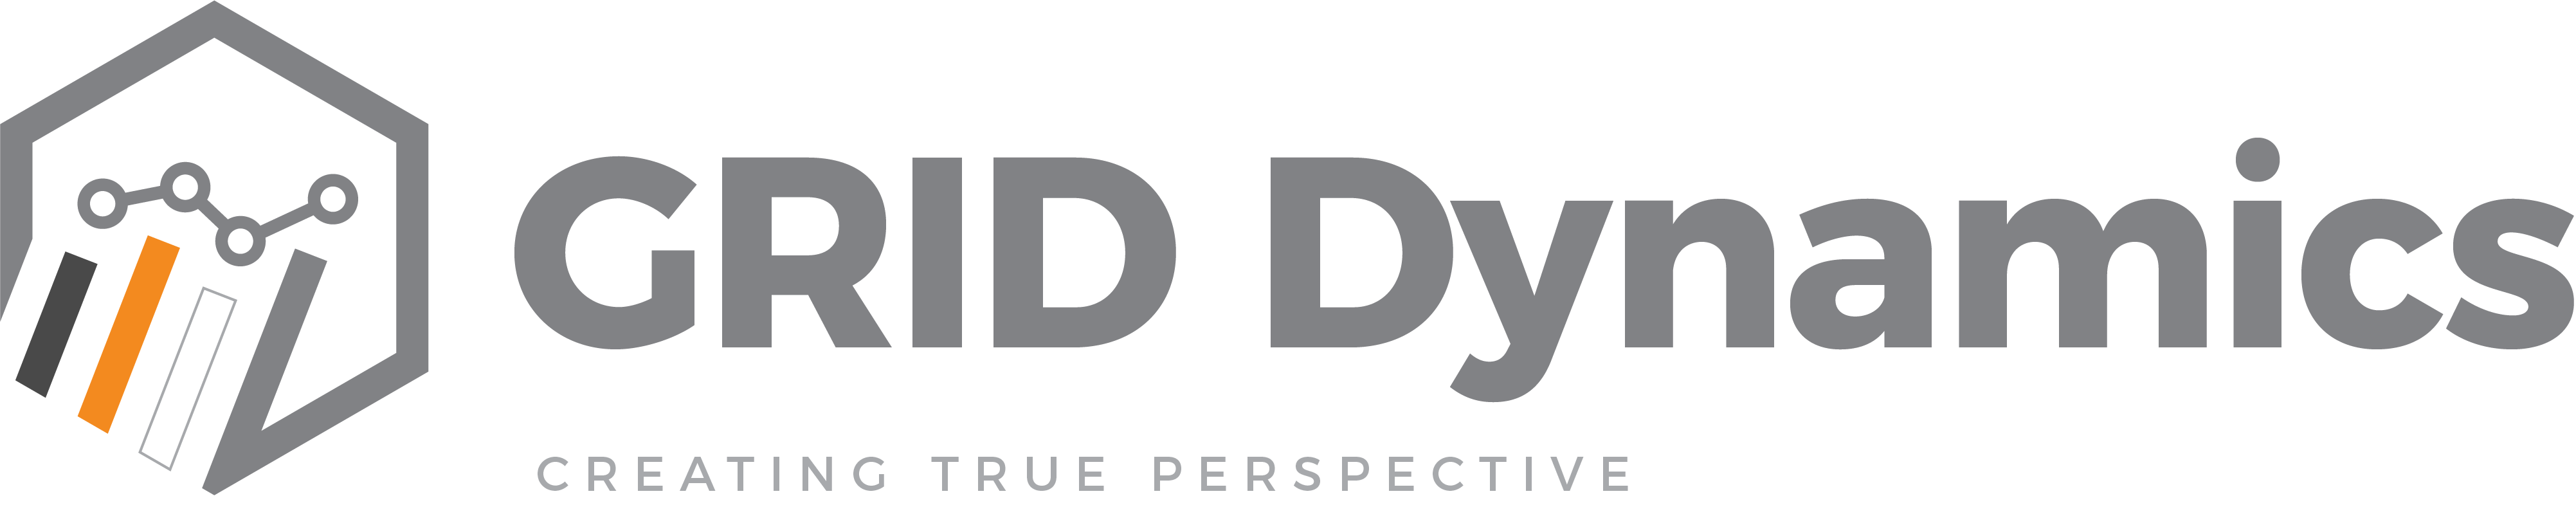 GRID Dynamics Inc.